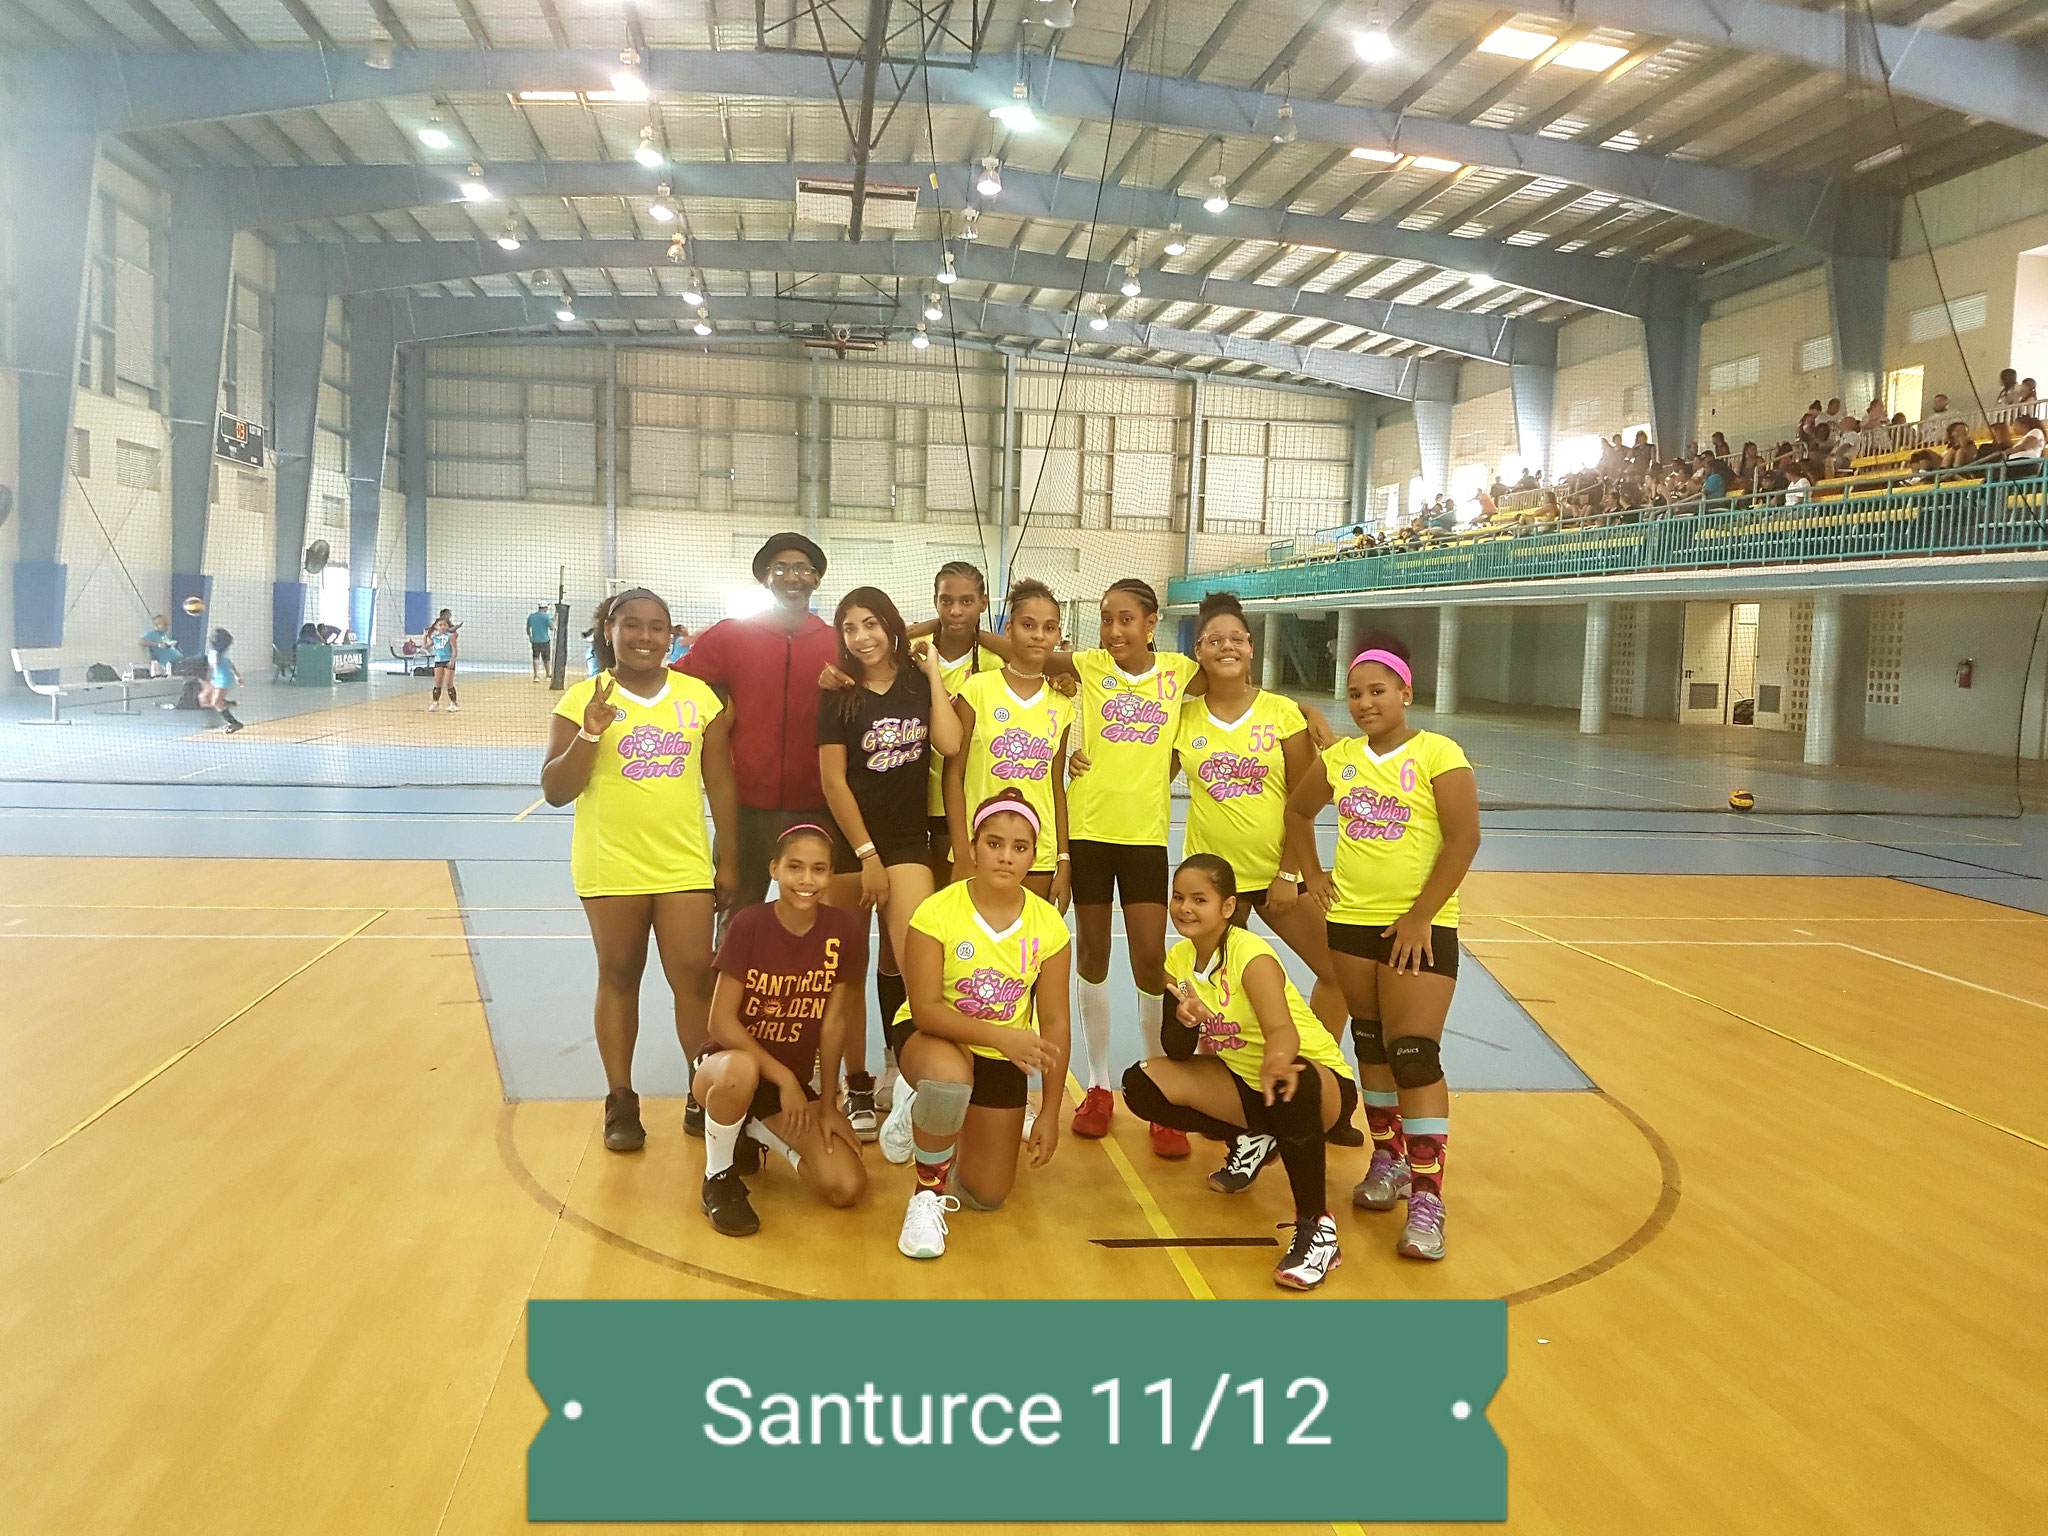 SANTURCE GOLDEN GIRLS CUARTO LUGAR 11 Y 12 AÑOS